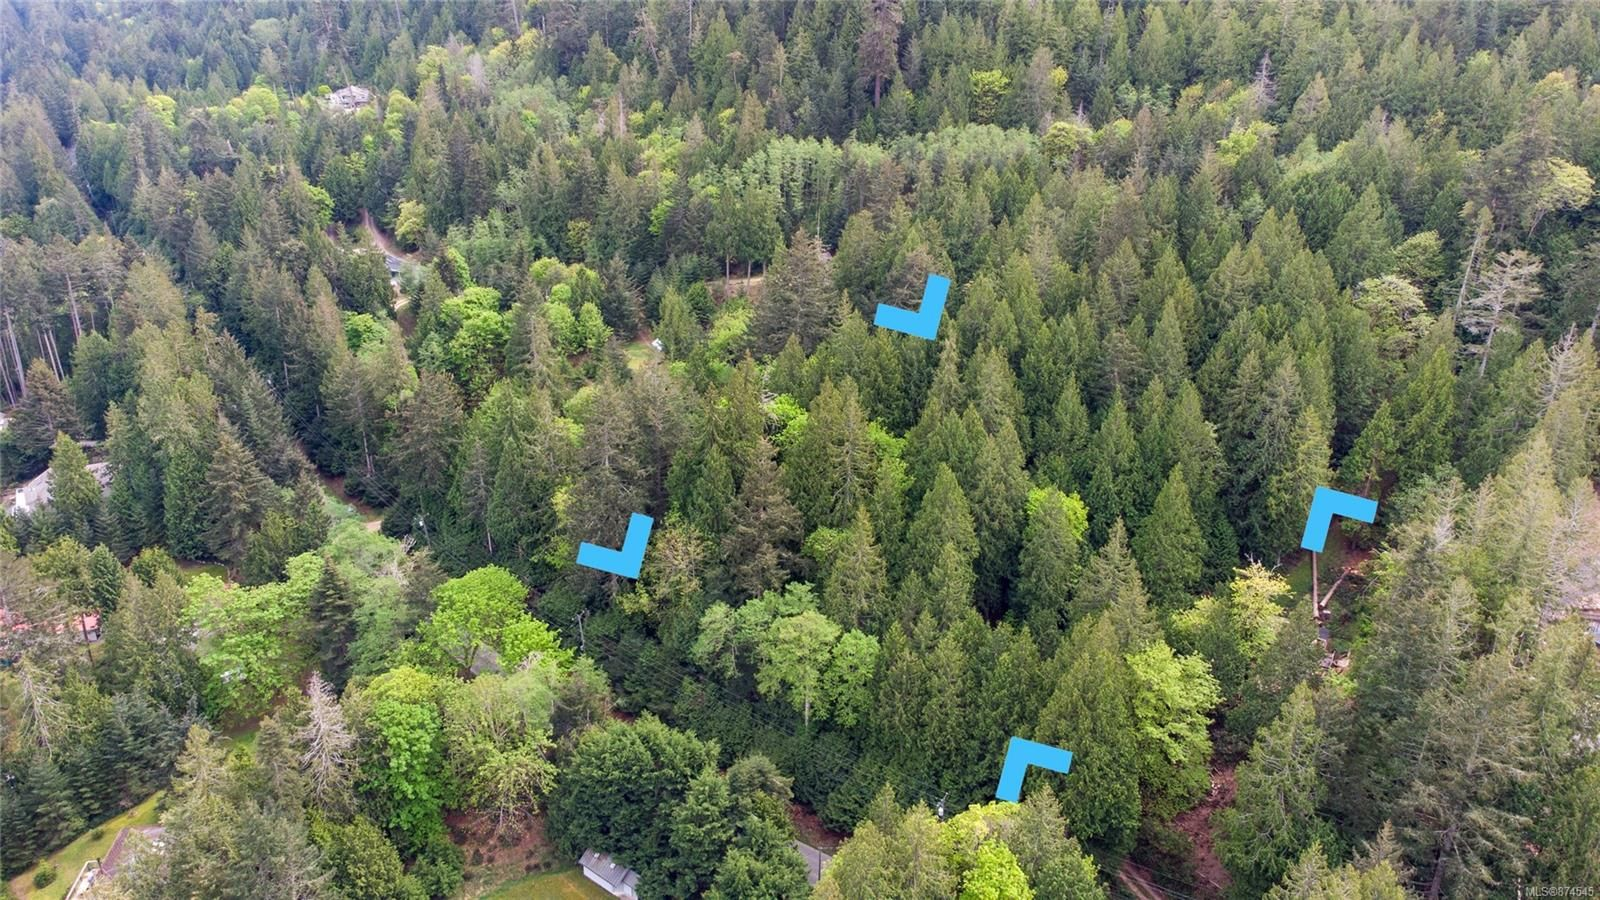 Main Photo: 8817 Canal Rd in : GI Pender Island Land for sale (Gulf Islands)  : MLS®# 874545